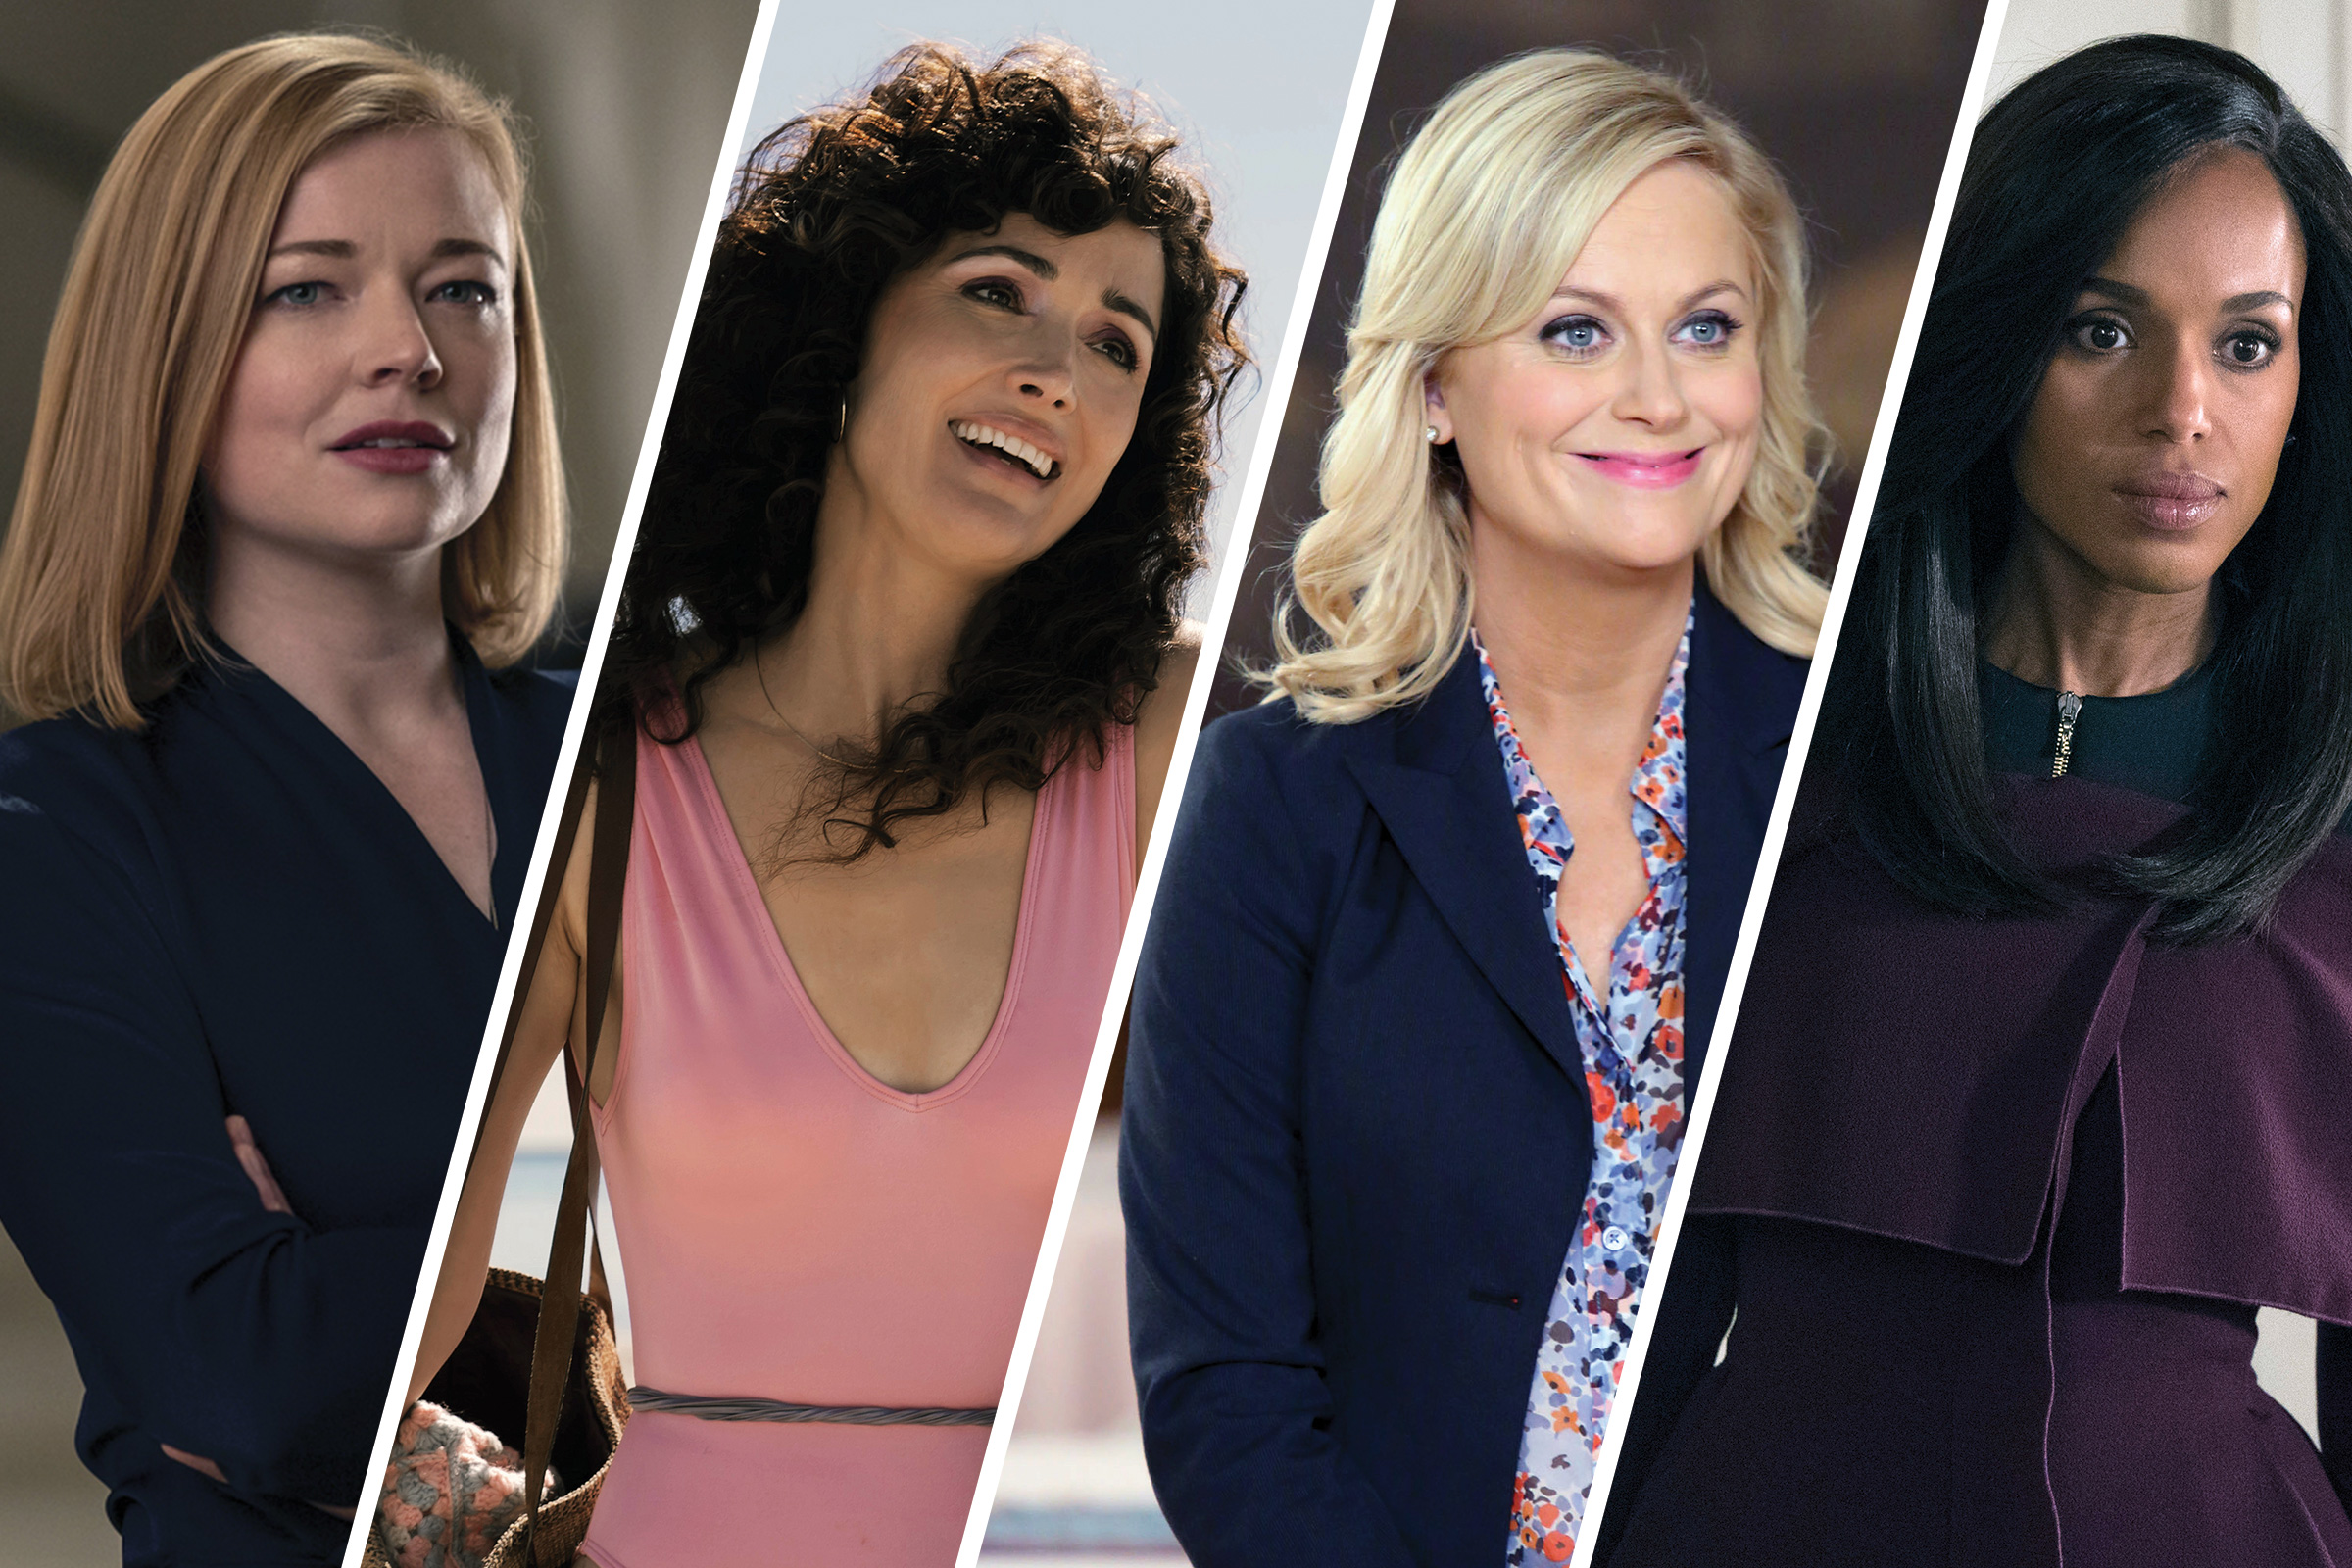 Shiv Roy from Succession, Sheila Rubin in Physical, Leslie Knope in Parks and Recreation and Olivia Pope in Scandal.